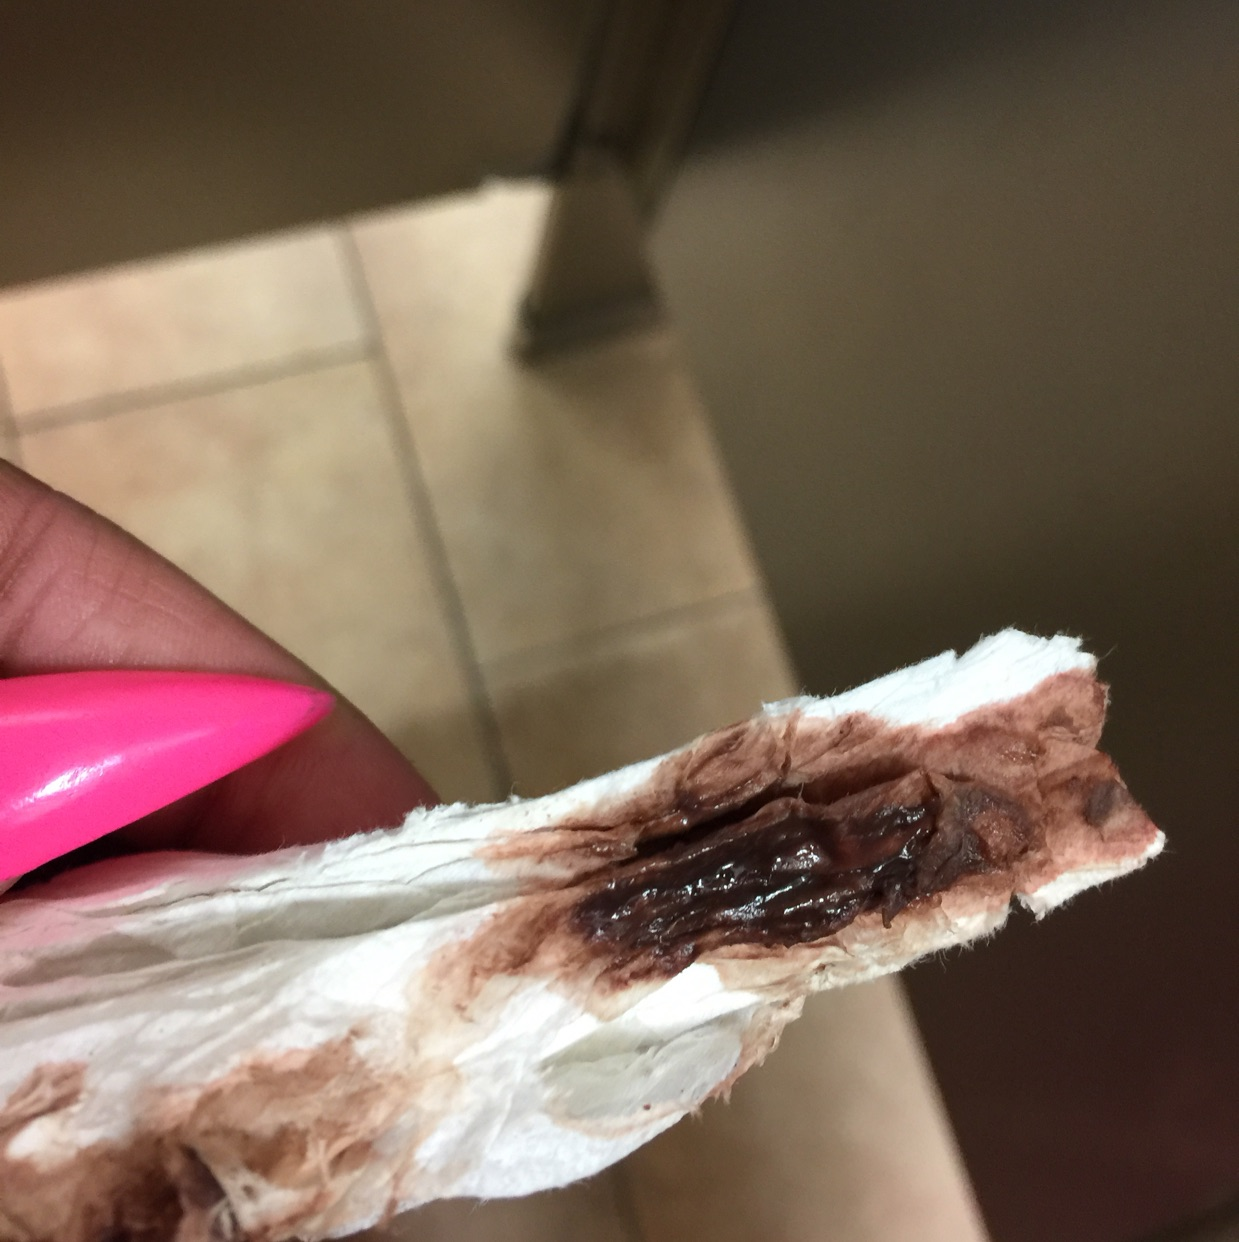 What Does Implantation Bleeding Look Like On A Tampon 98926